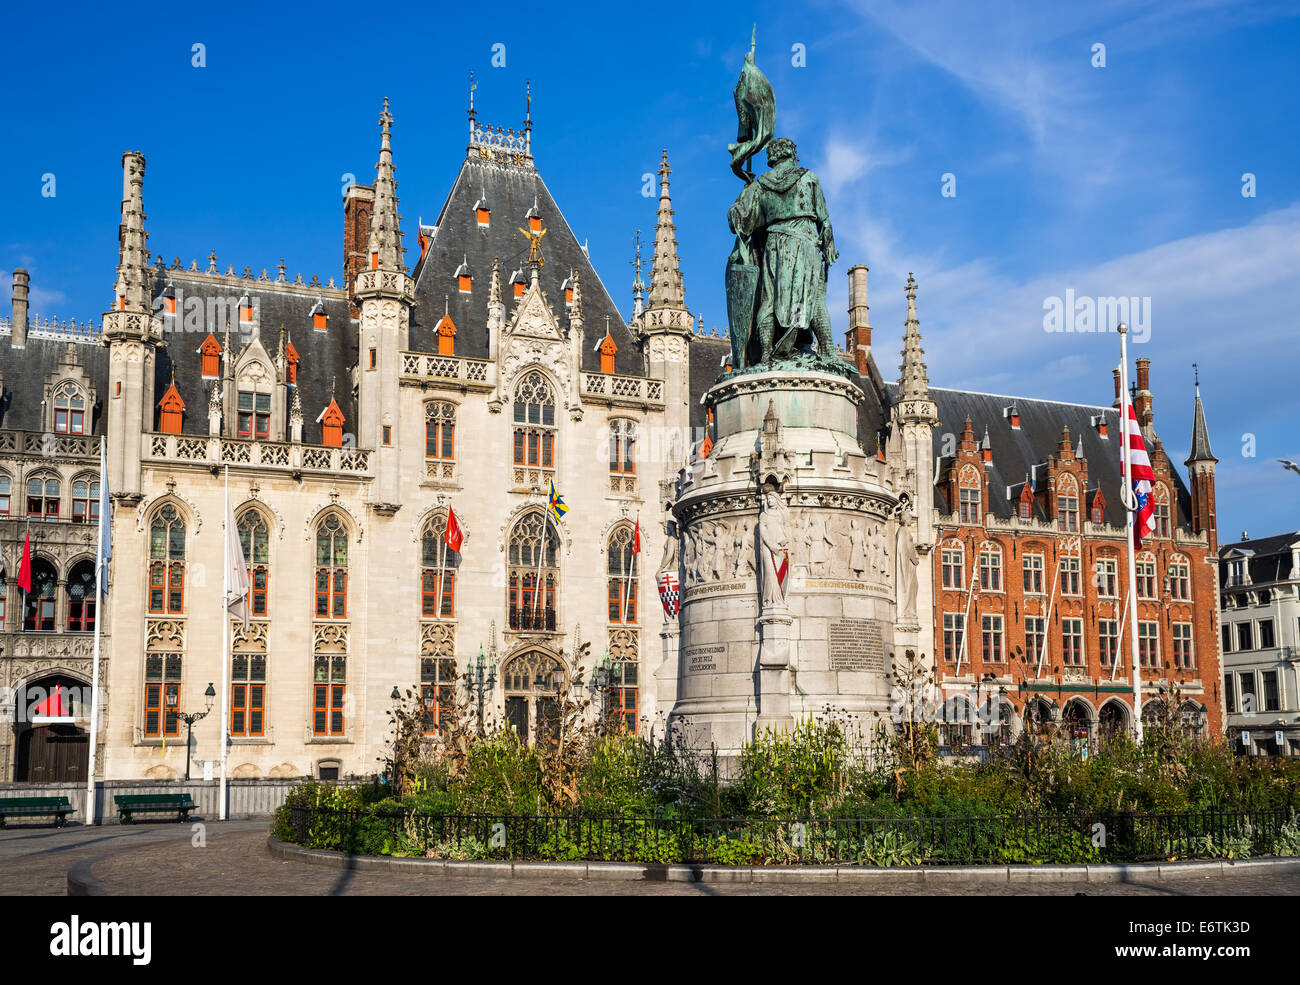 Provinciaal Hof built in 1284 neogothical building on the Grote Markt place in Bruges, Belgium. - Stock Image